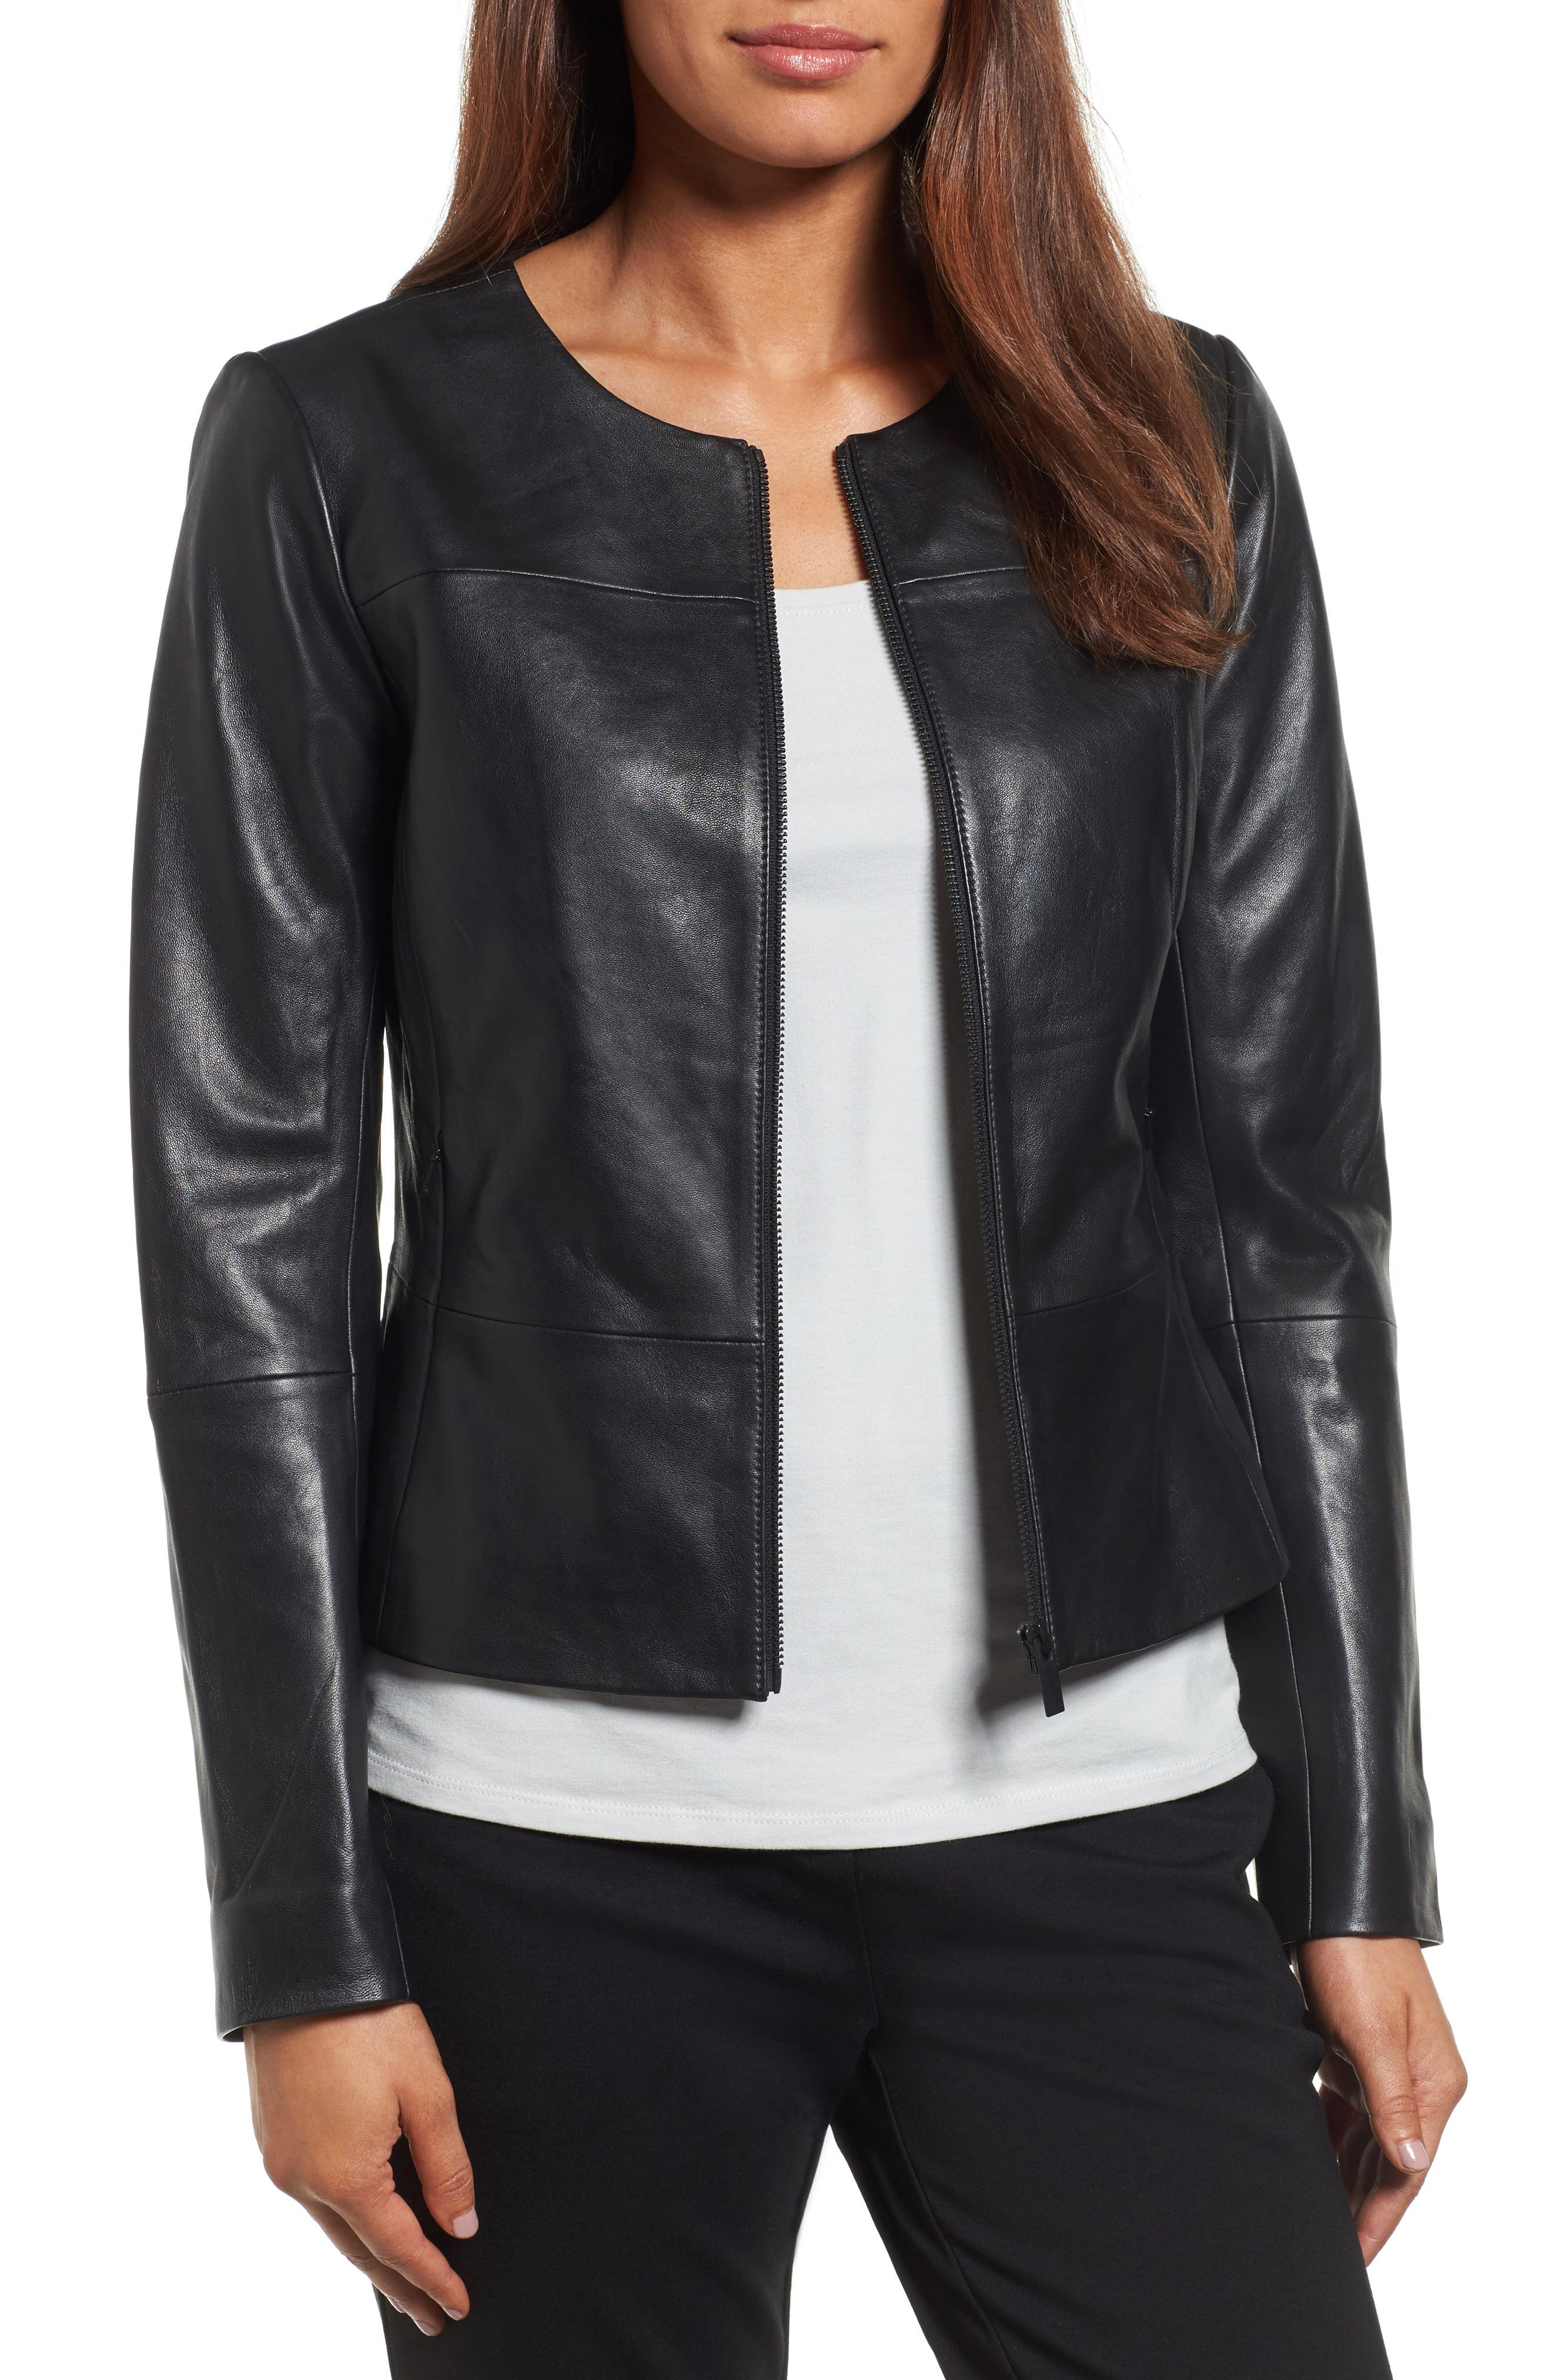 Emerson Rose Peplum Leather Jacket